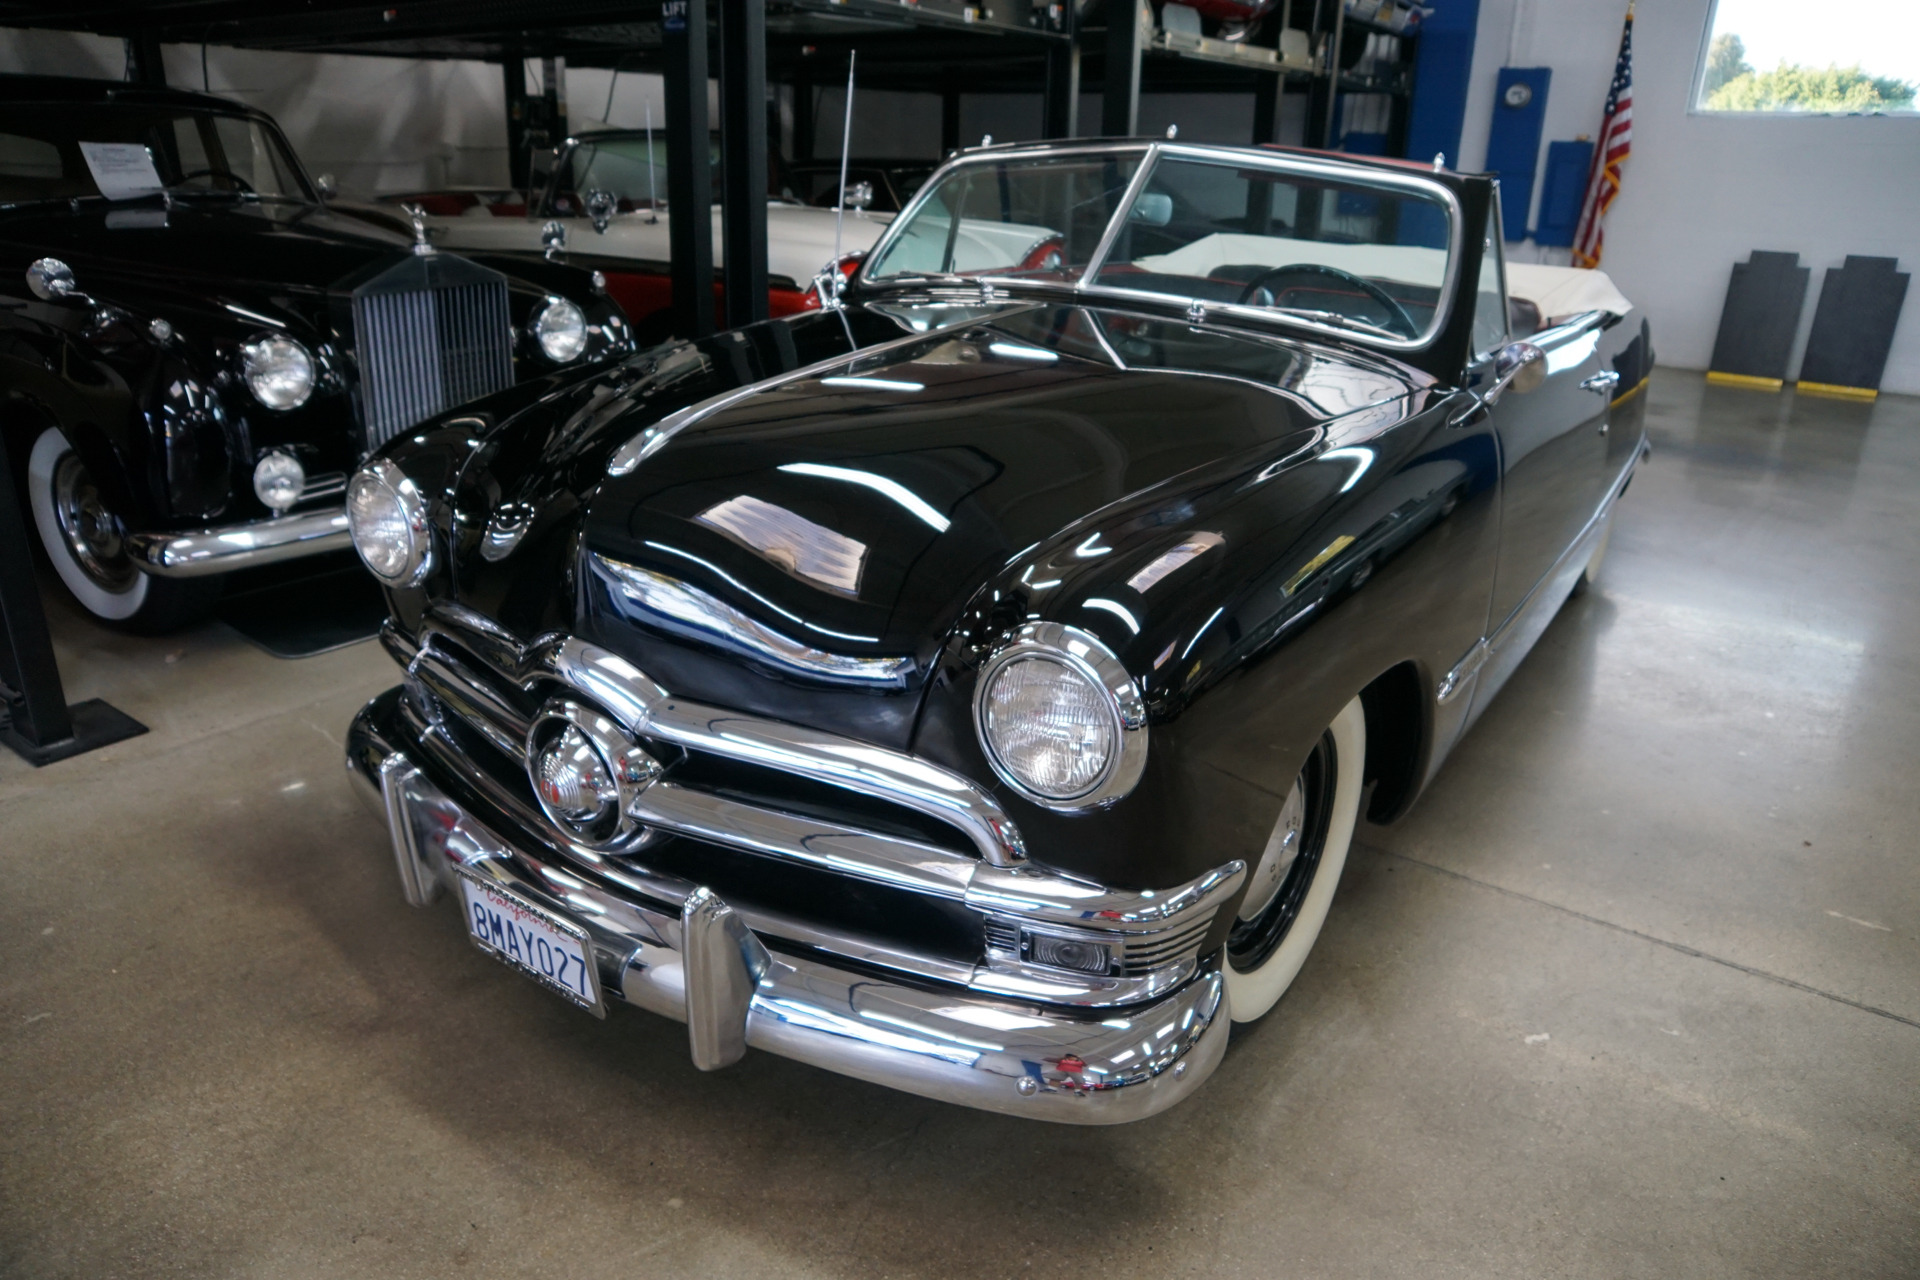 1950 Ford Custom Deluxe 239 V8 Convertible With 3 Spd O D Dual Carbs Stock 105880 For Sale Near Torrance Ca Ca Ford Dealer